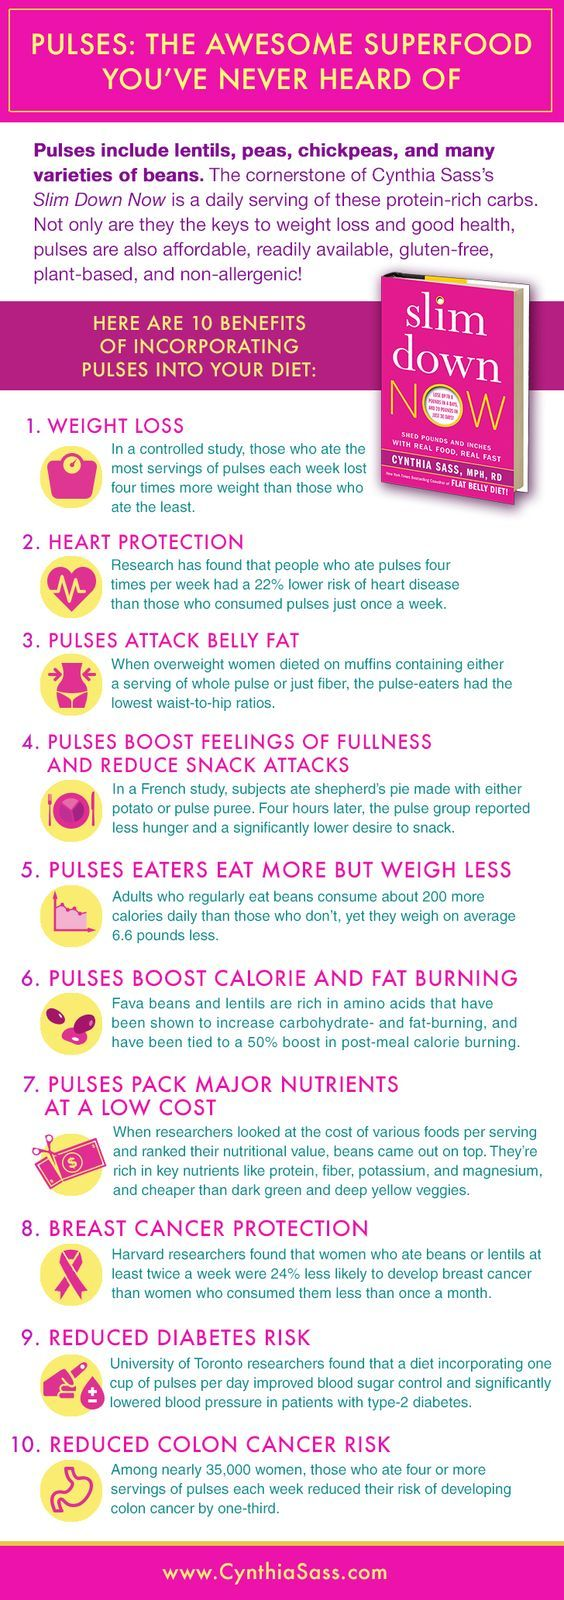 How to lose weight skinny girl image 7